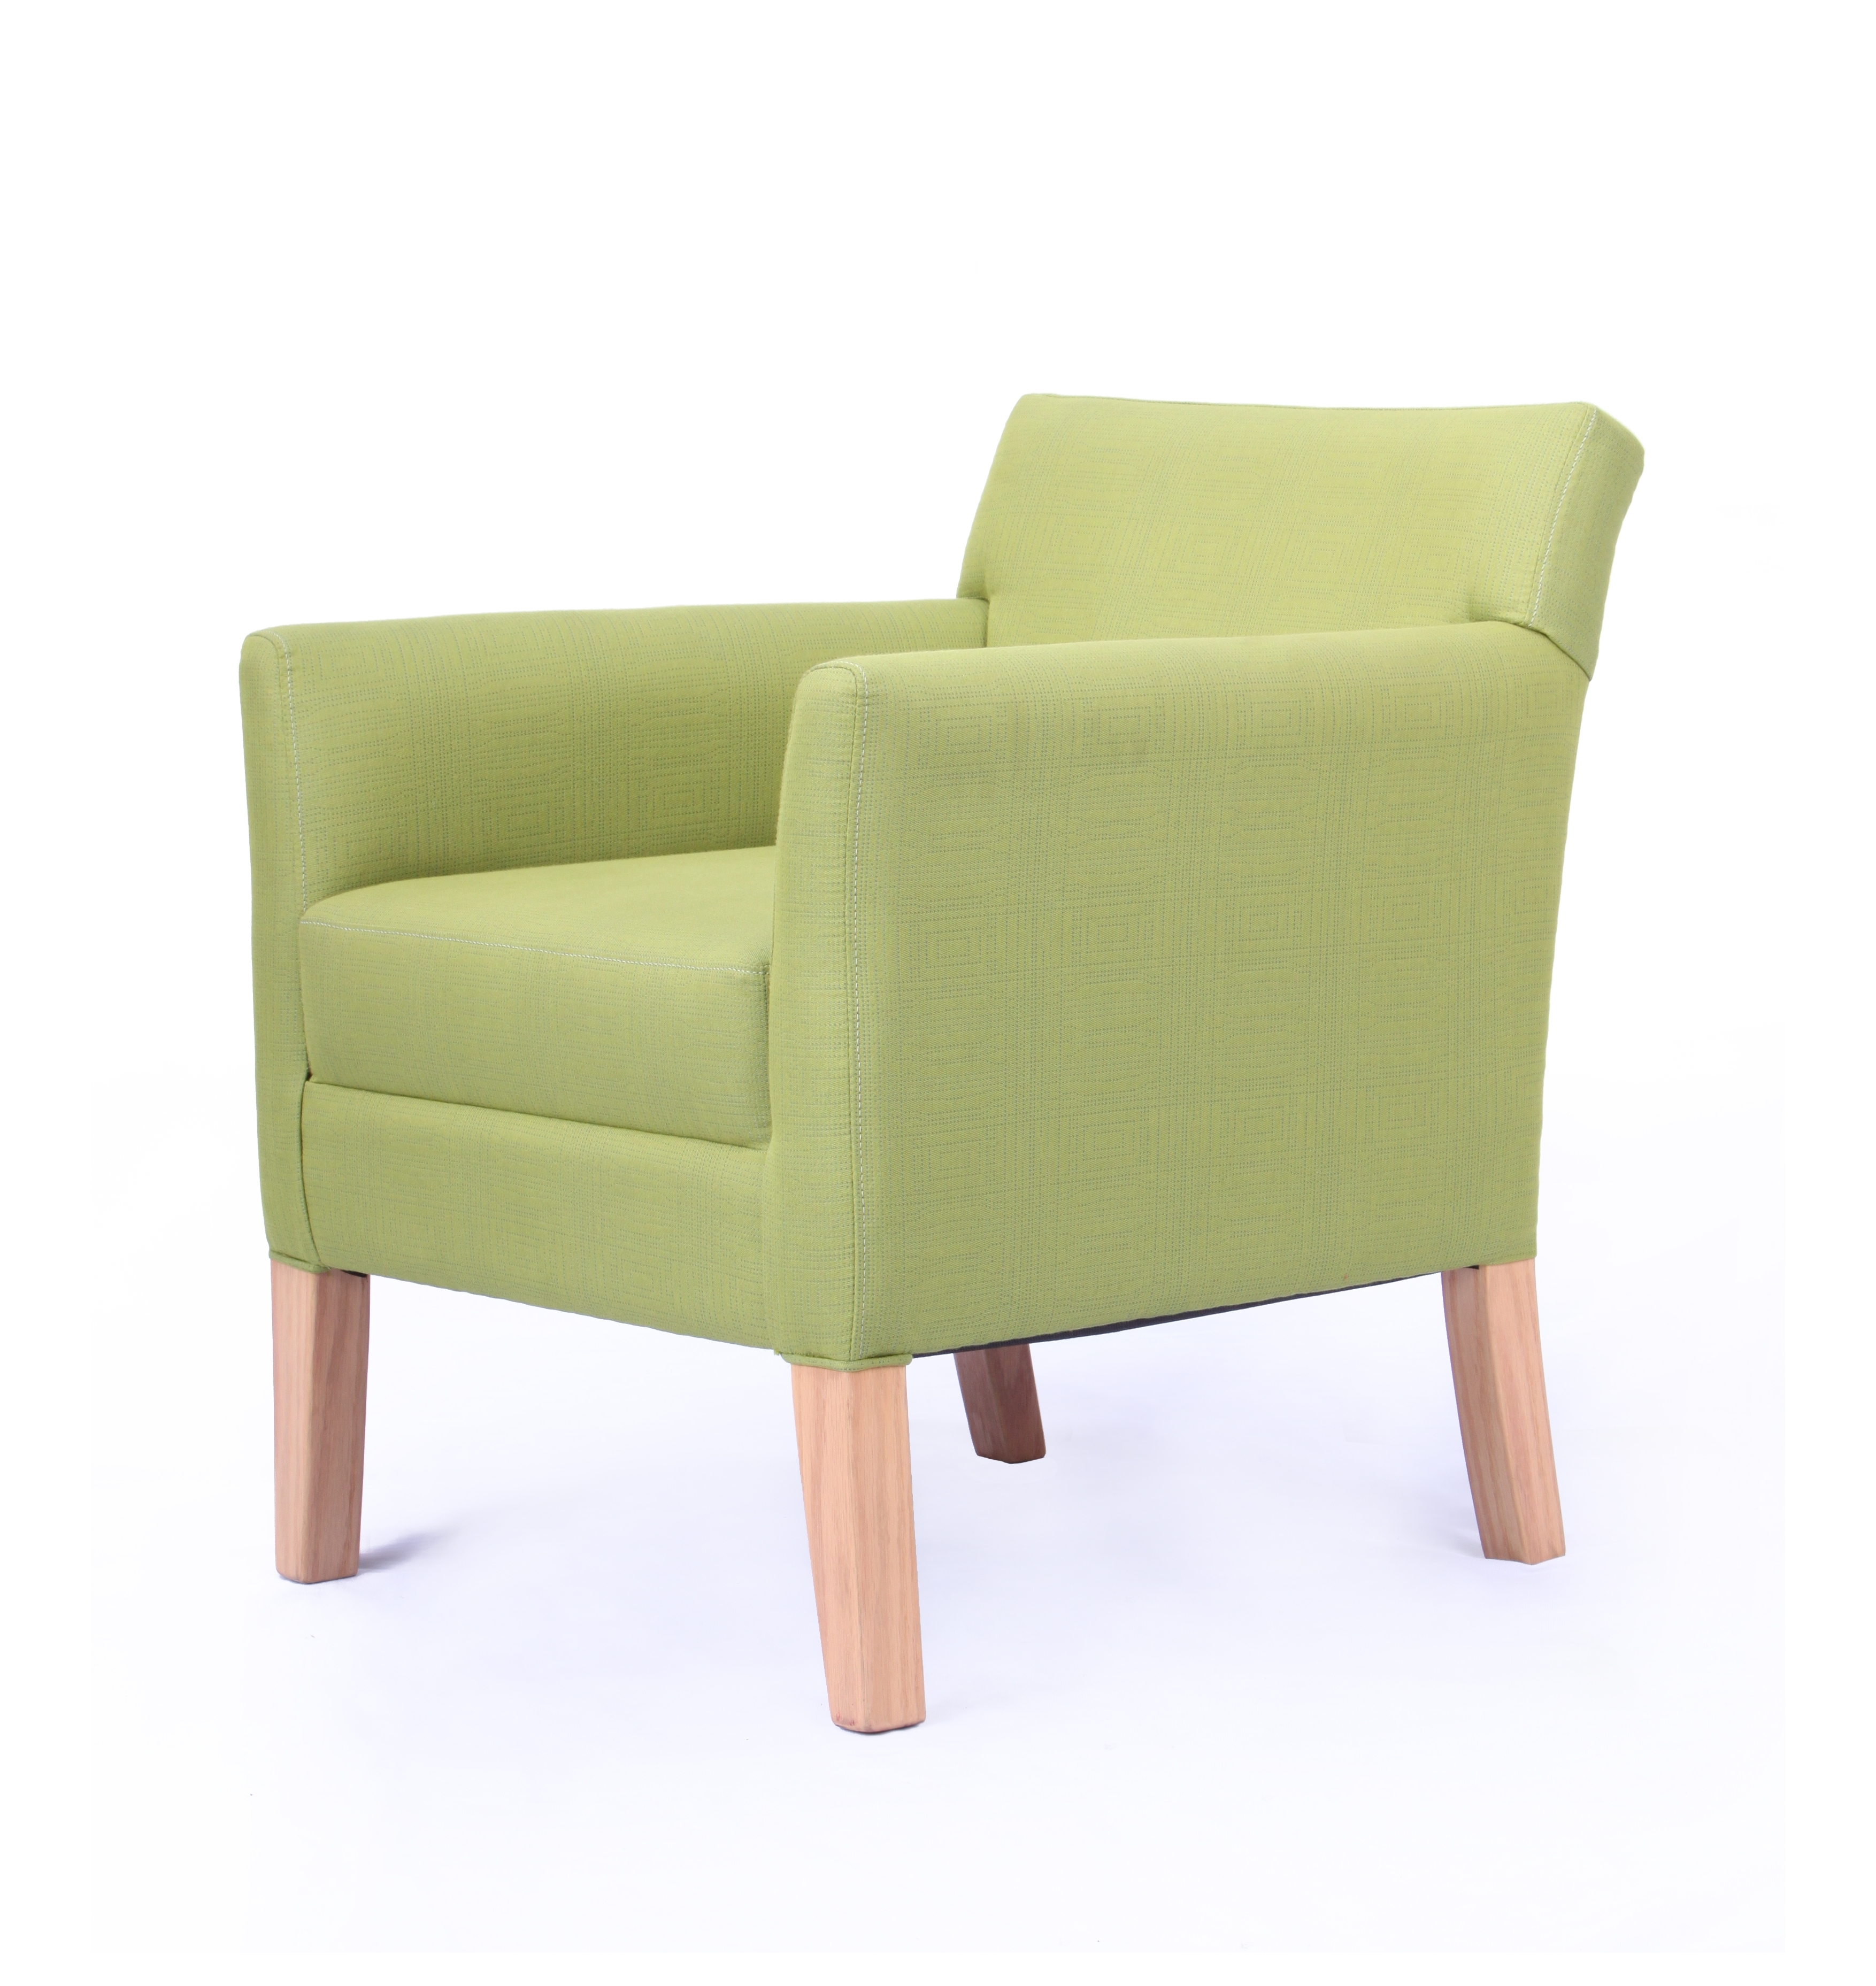 Well Known Green Sofa Chairs Intended For Sofa Chair (View 13 of 20)